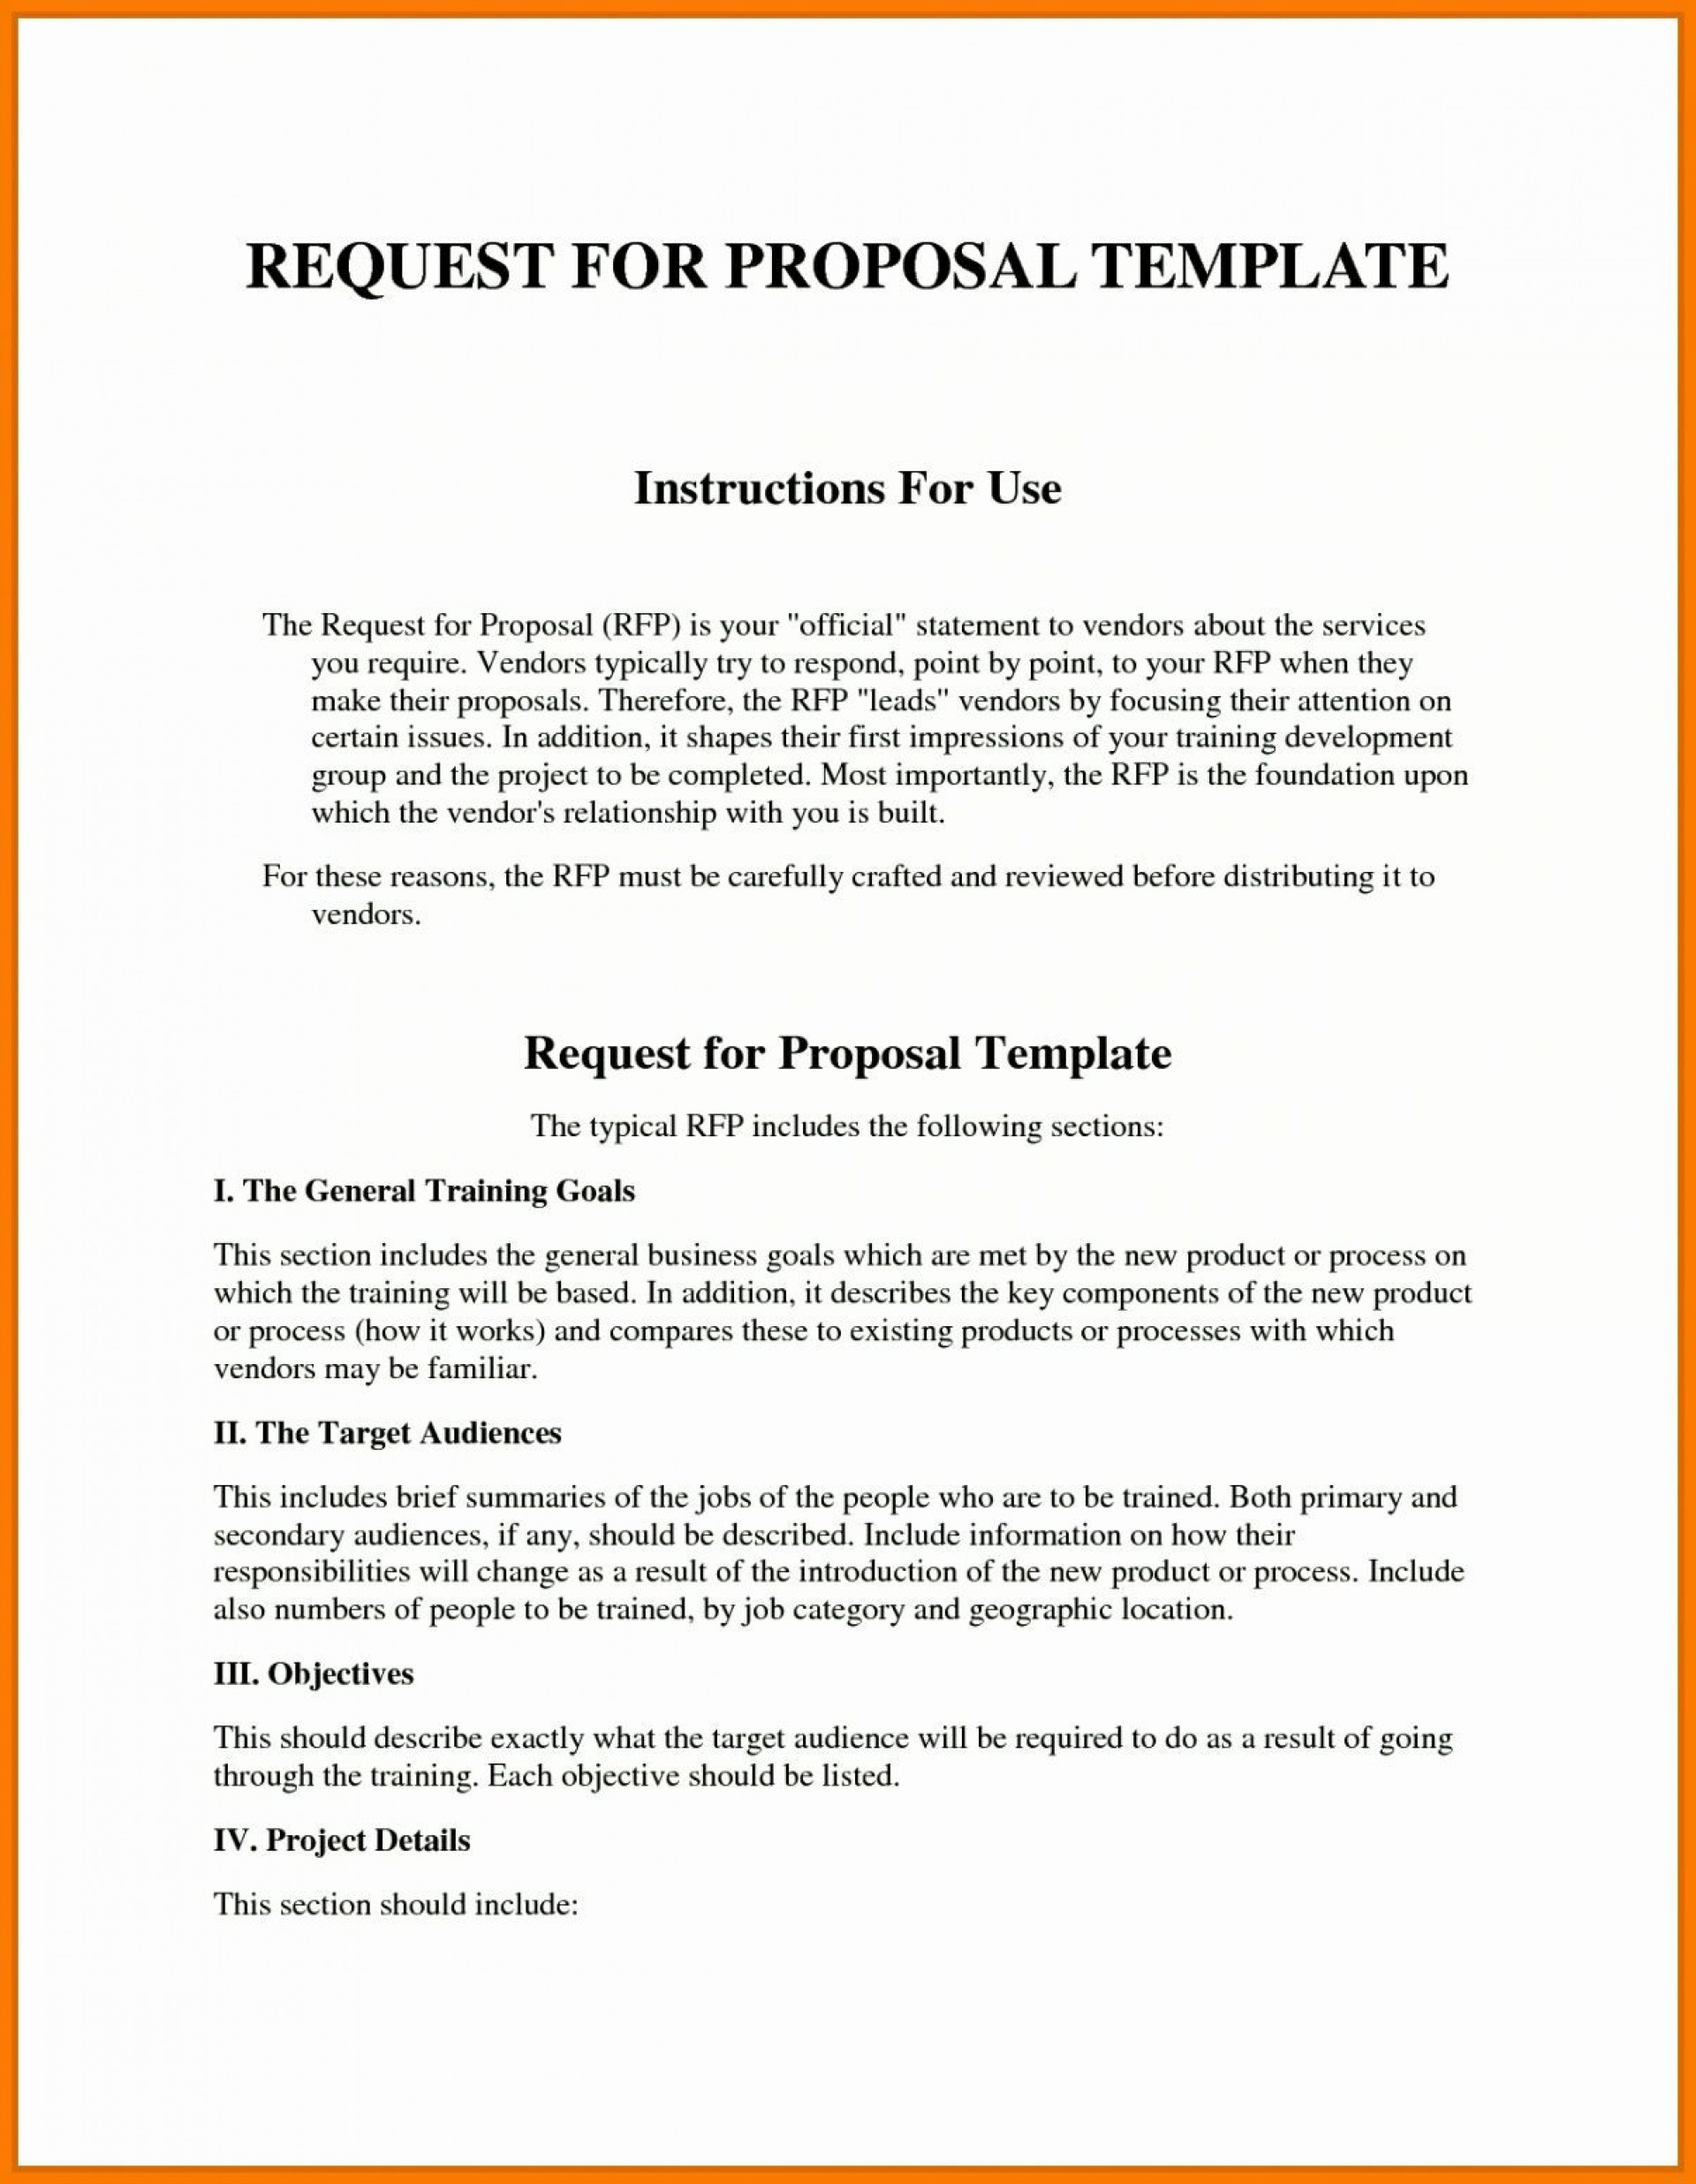 003 Remarkable Request For Proposal Rfp Template Construction Inspiration 1920